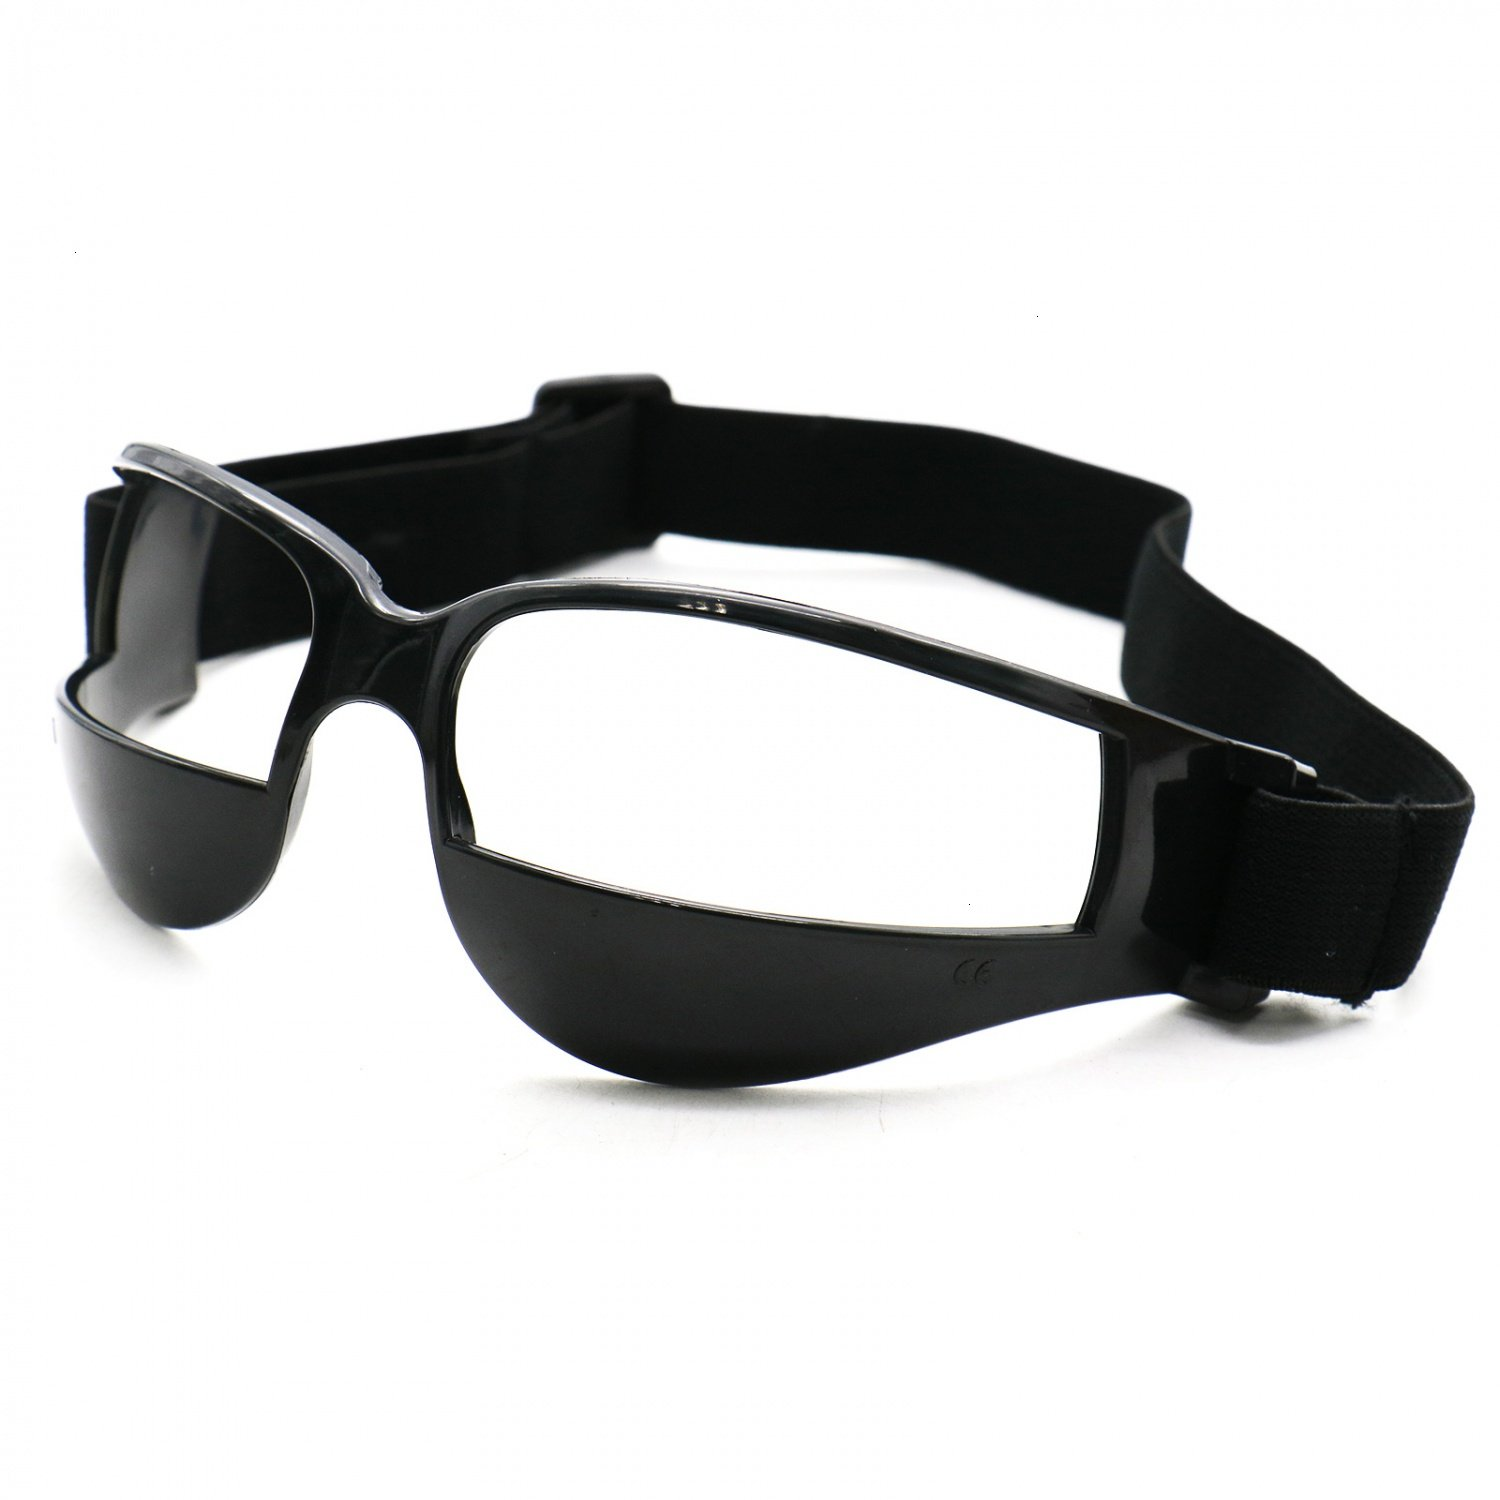 f79564db3574 Sports Goggles Dribble Specs Basketball Training Aid Safety Goggles with  Adjustable Strap